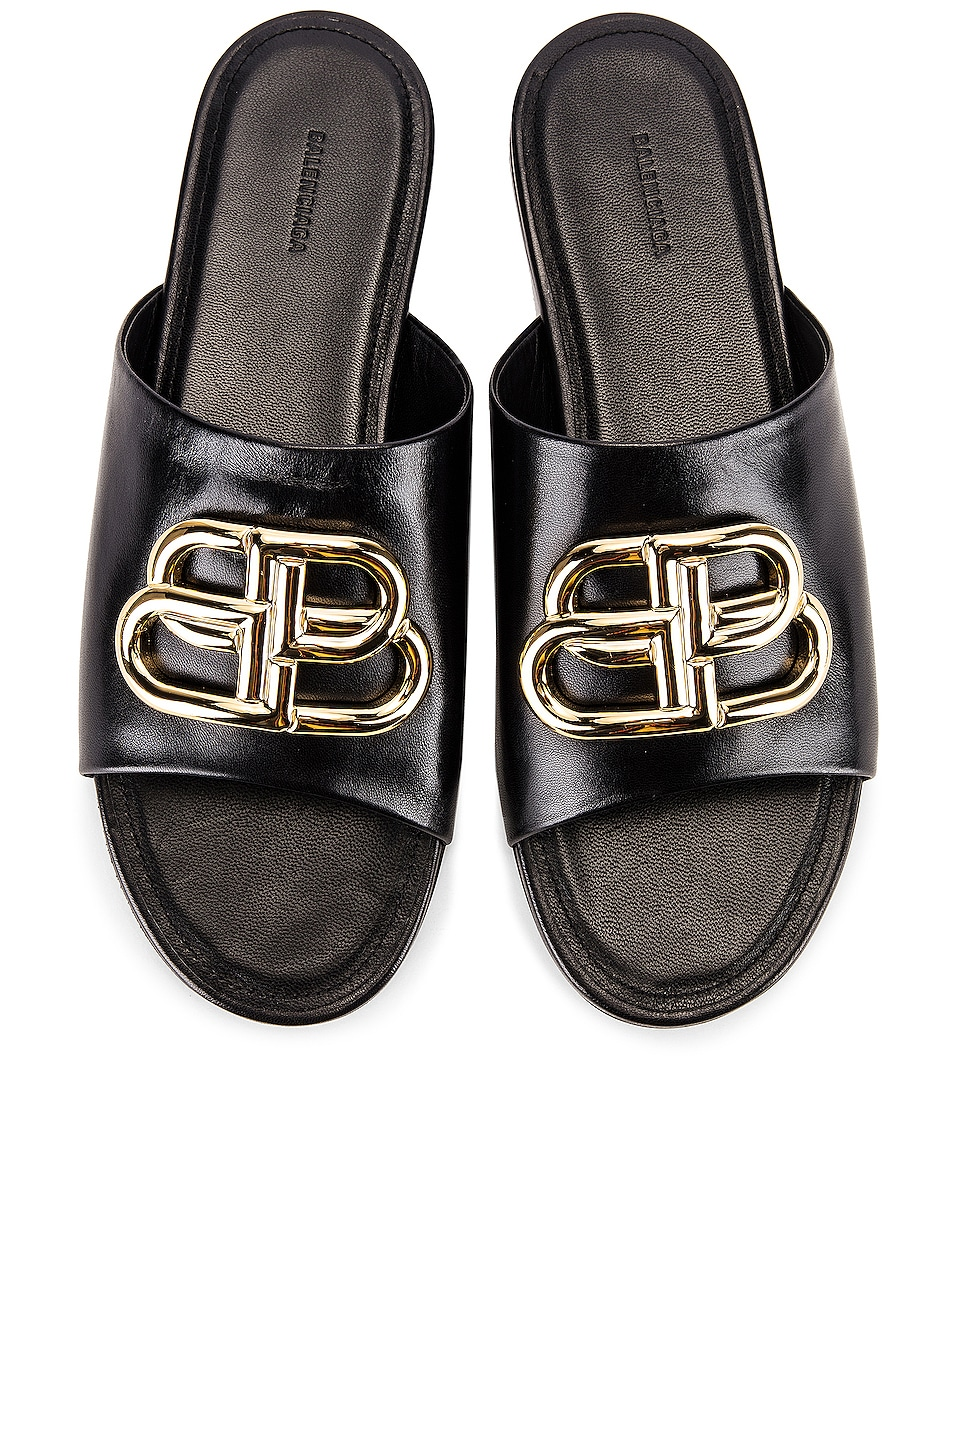 Image 1 of Balenciaga Ovall BB Slides in Black & Gold